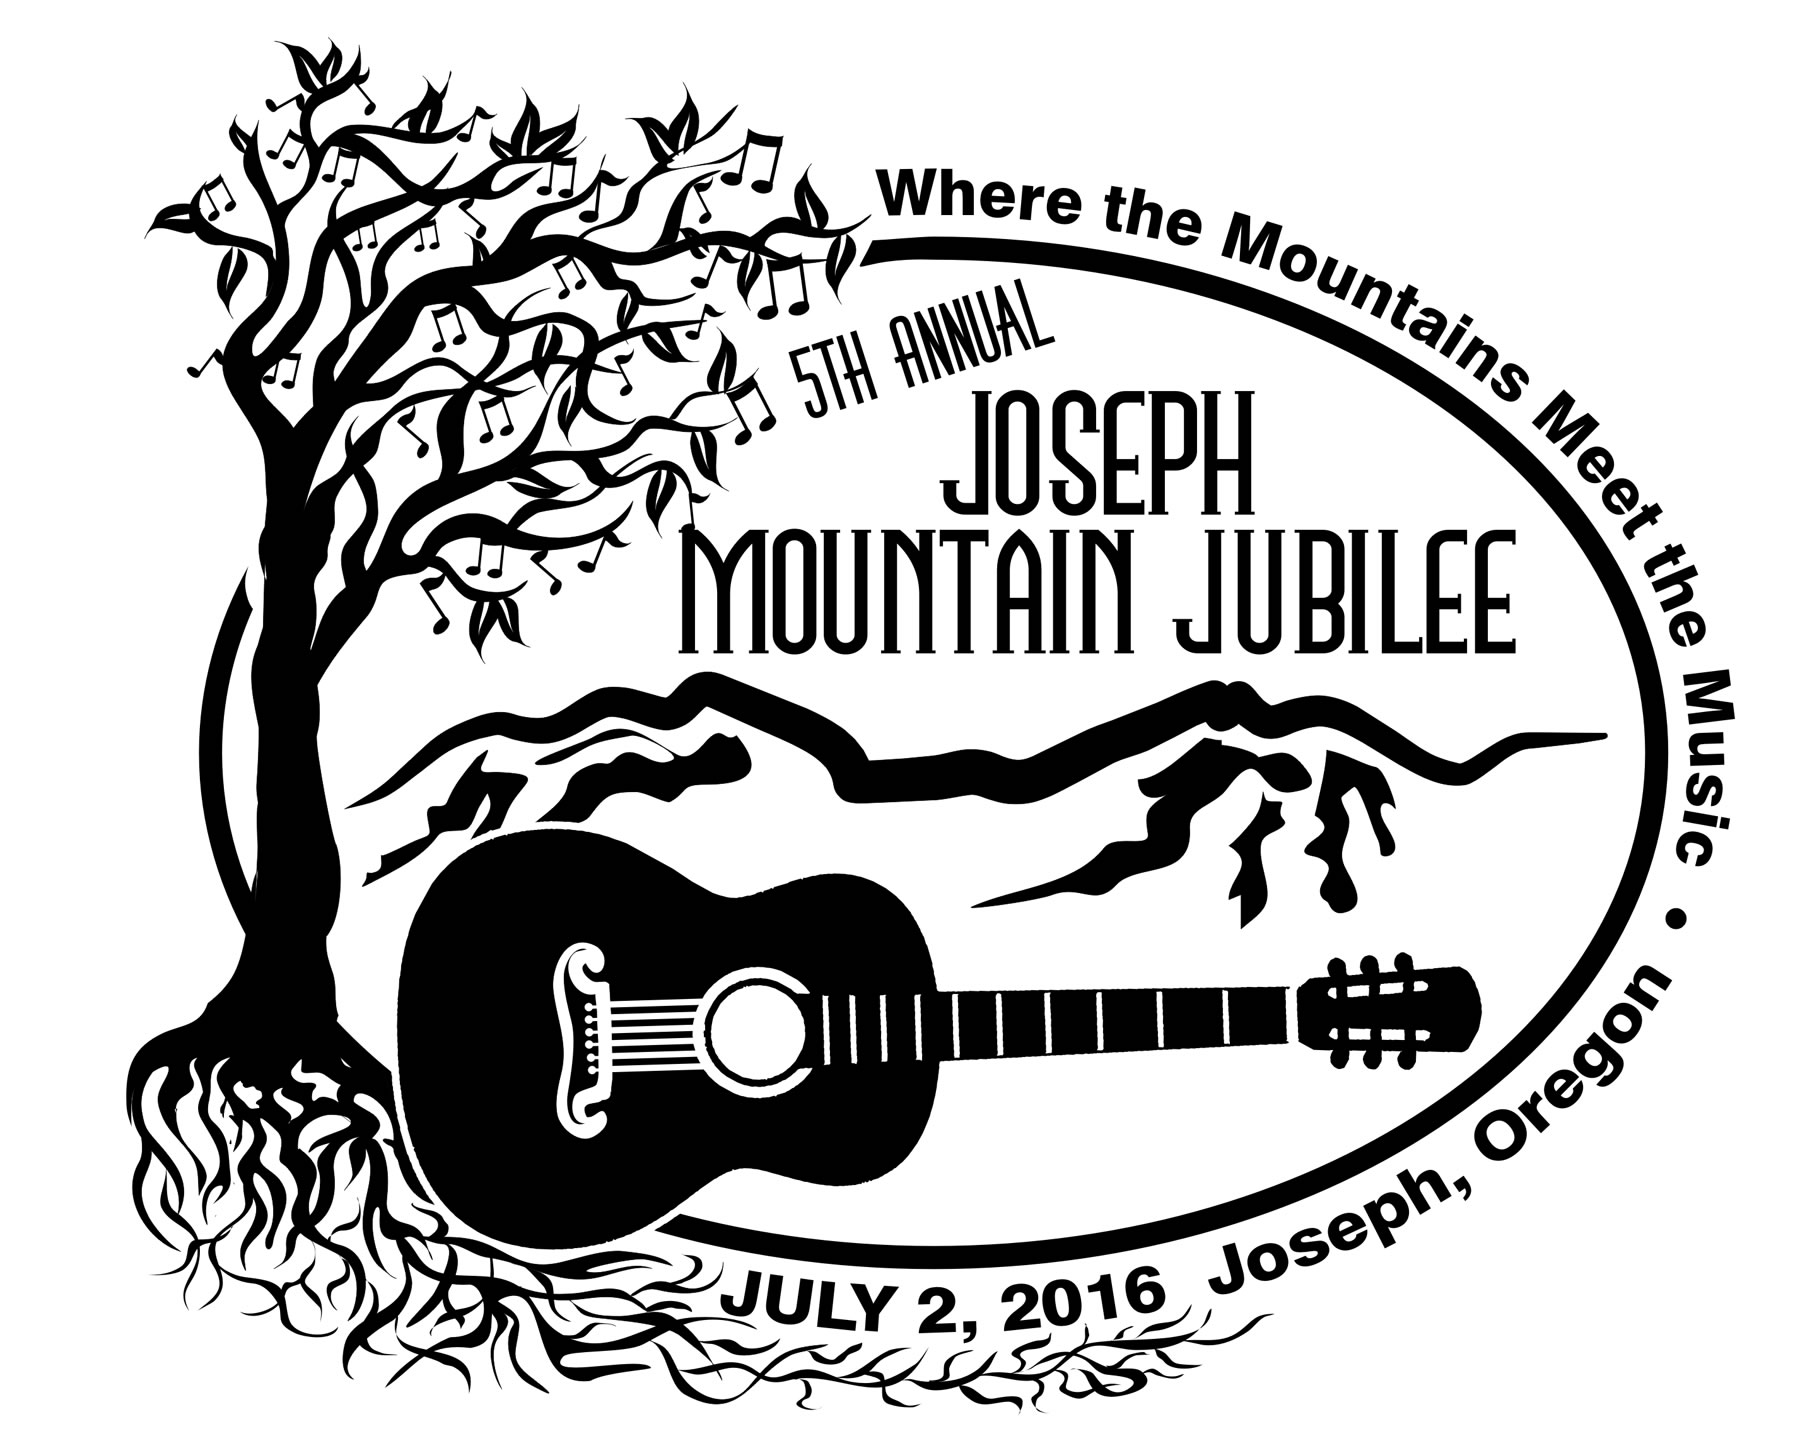 Joseph Mountain Jubilee